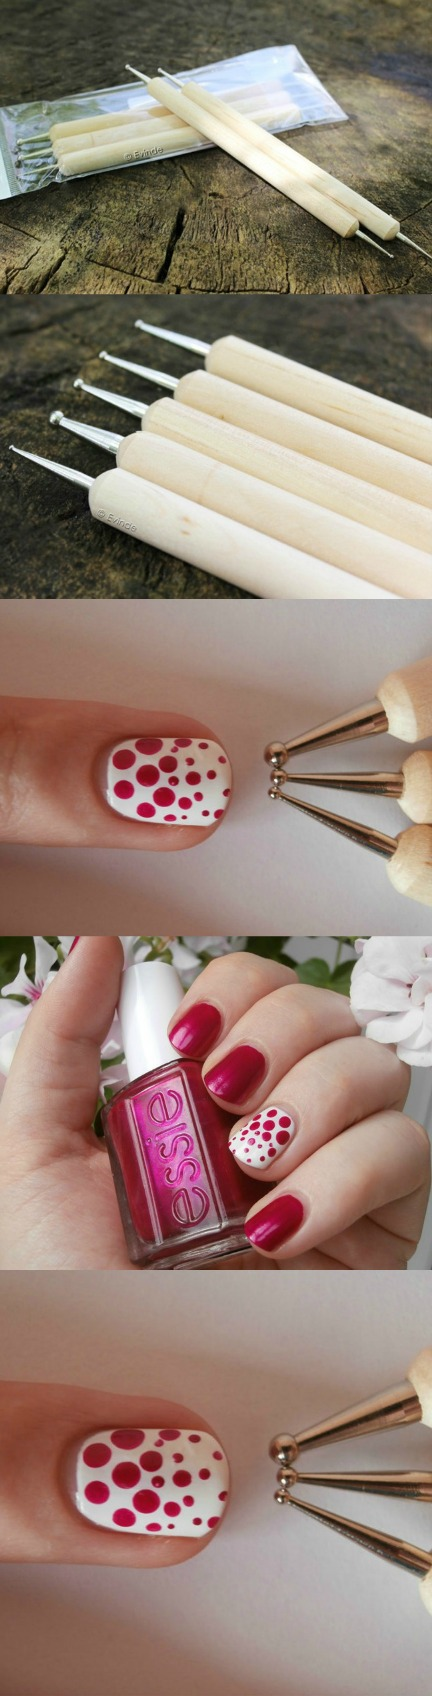 Wooden Dotting Pen Marbleizing Tool Nail Art Click The Image To Buy